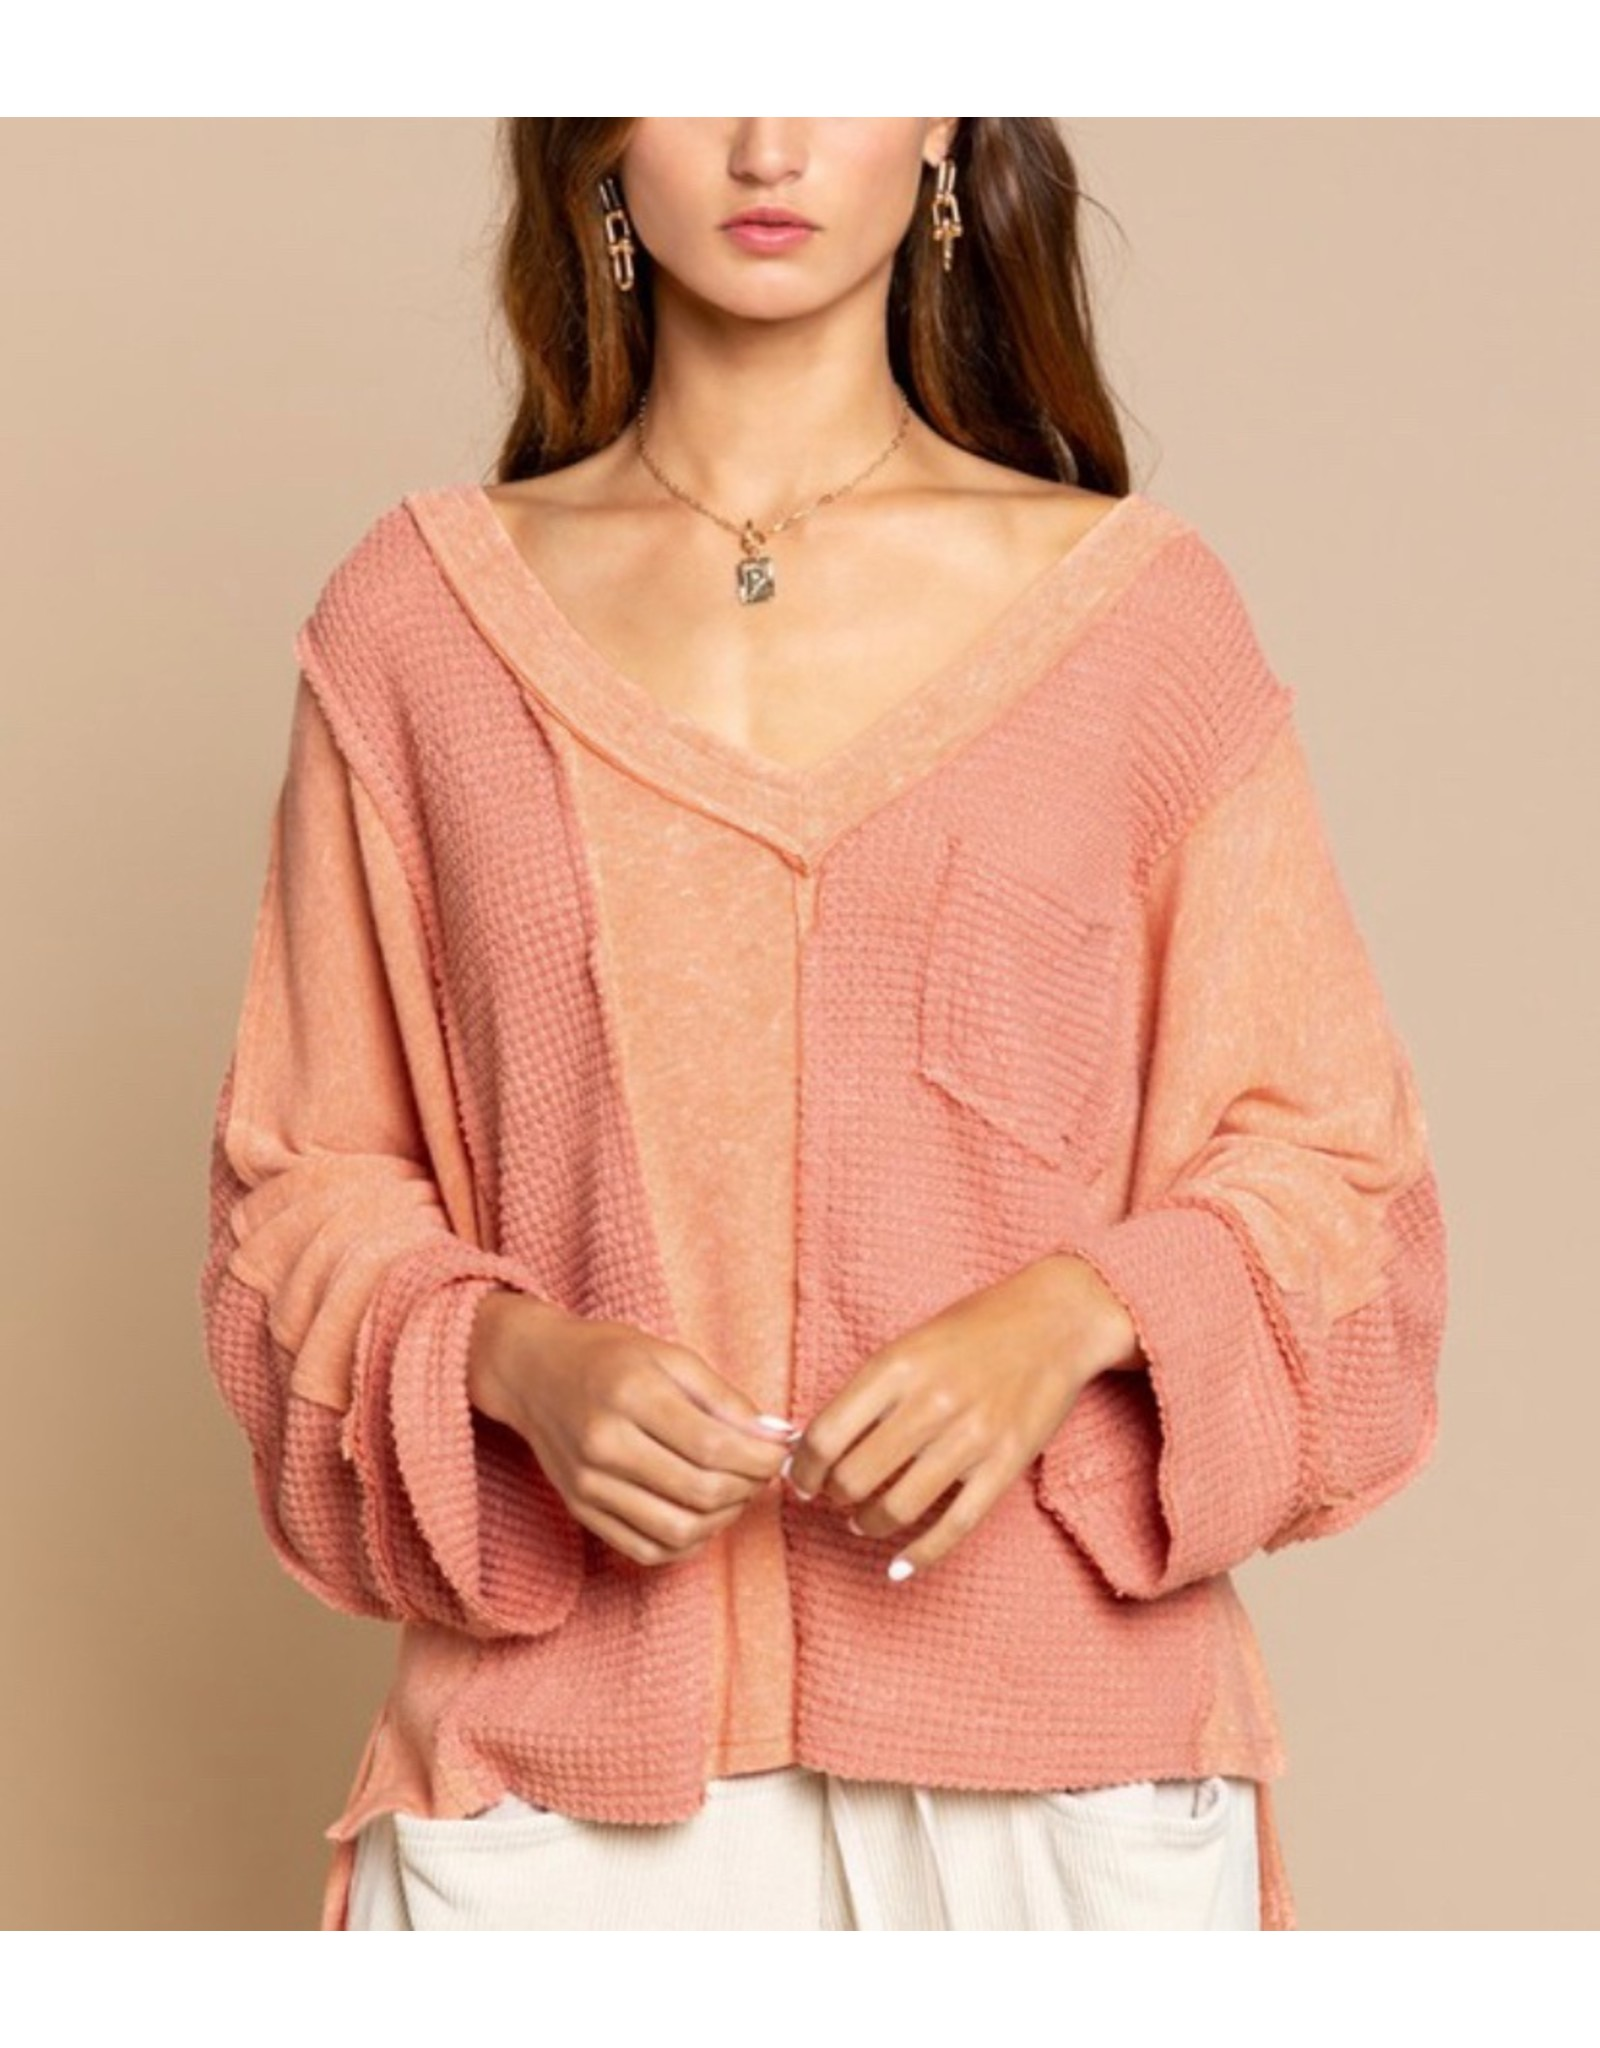 LATA Coral Reef Textured V-Neck Top